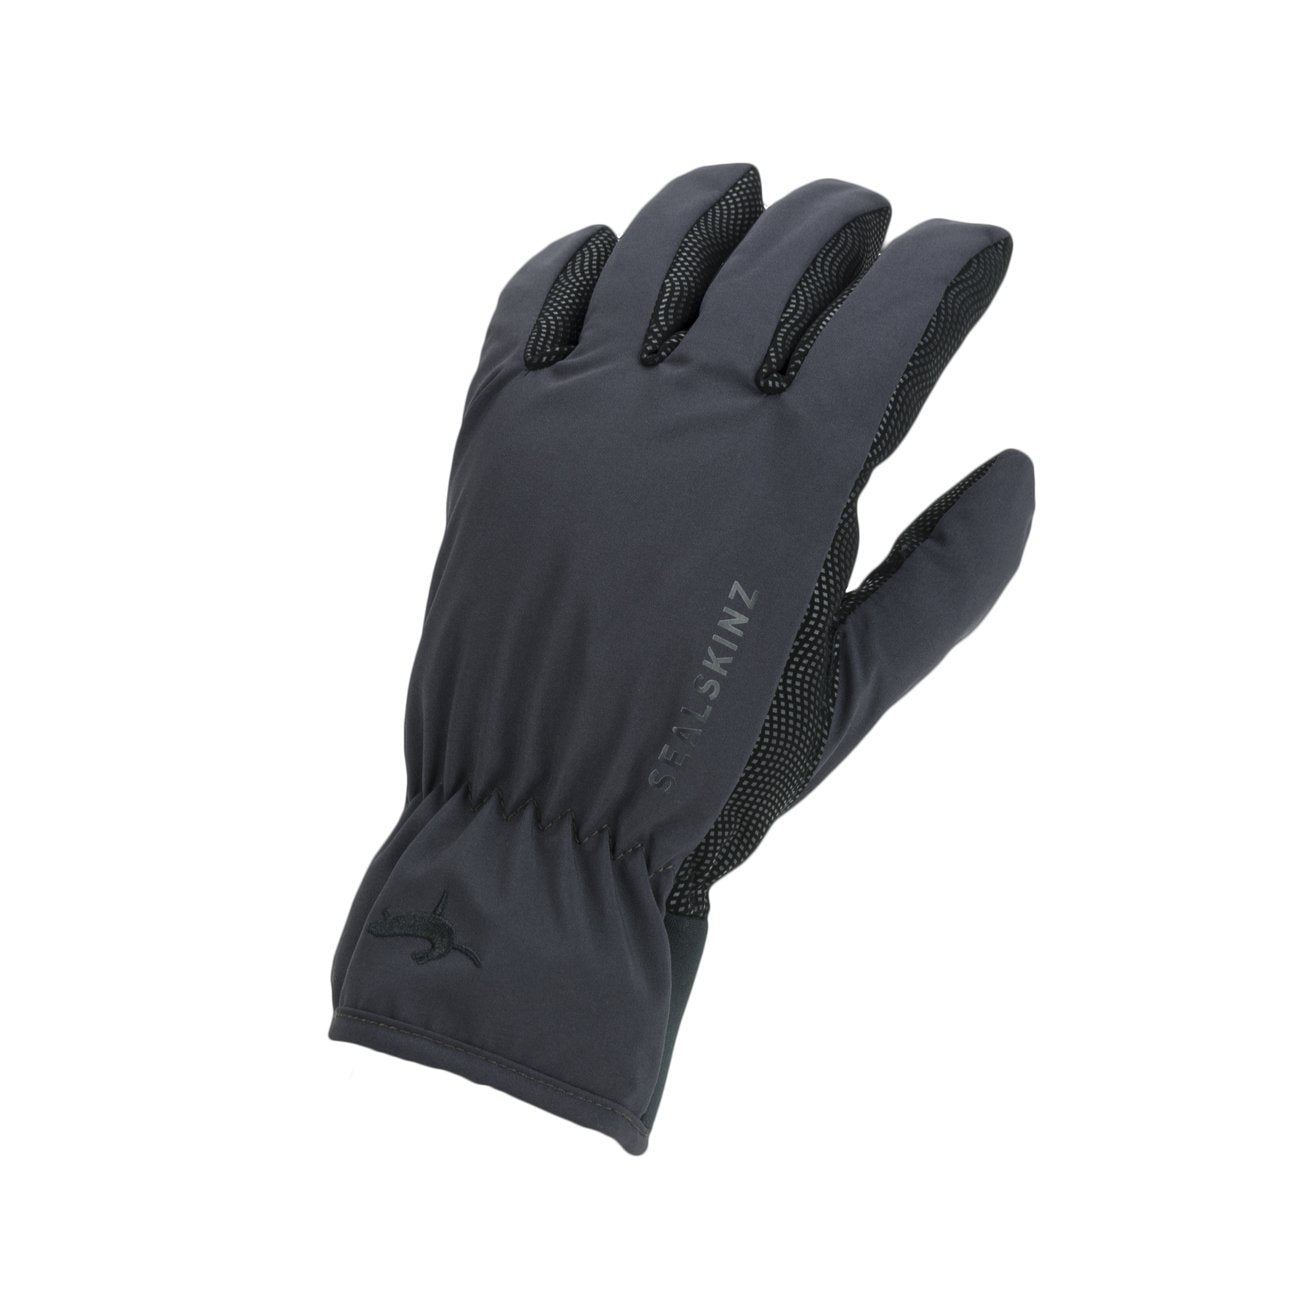 waterproof-all-weather-lightweight-glove